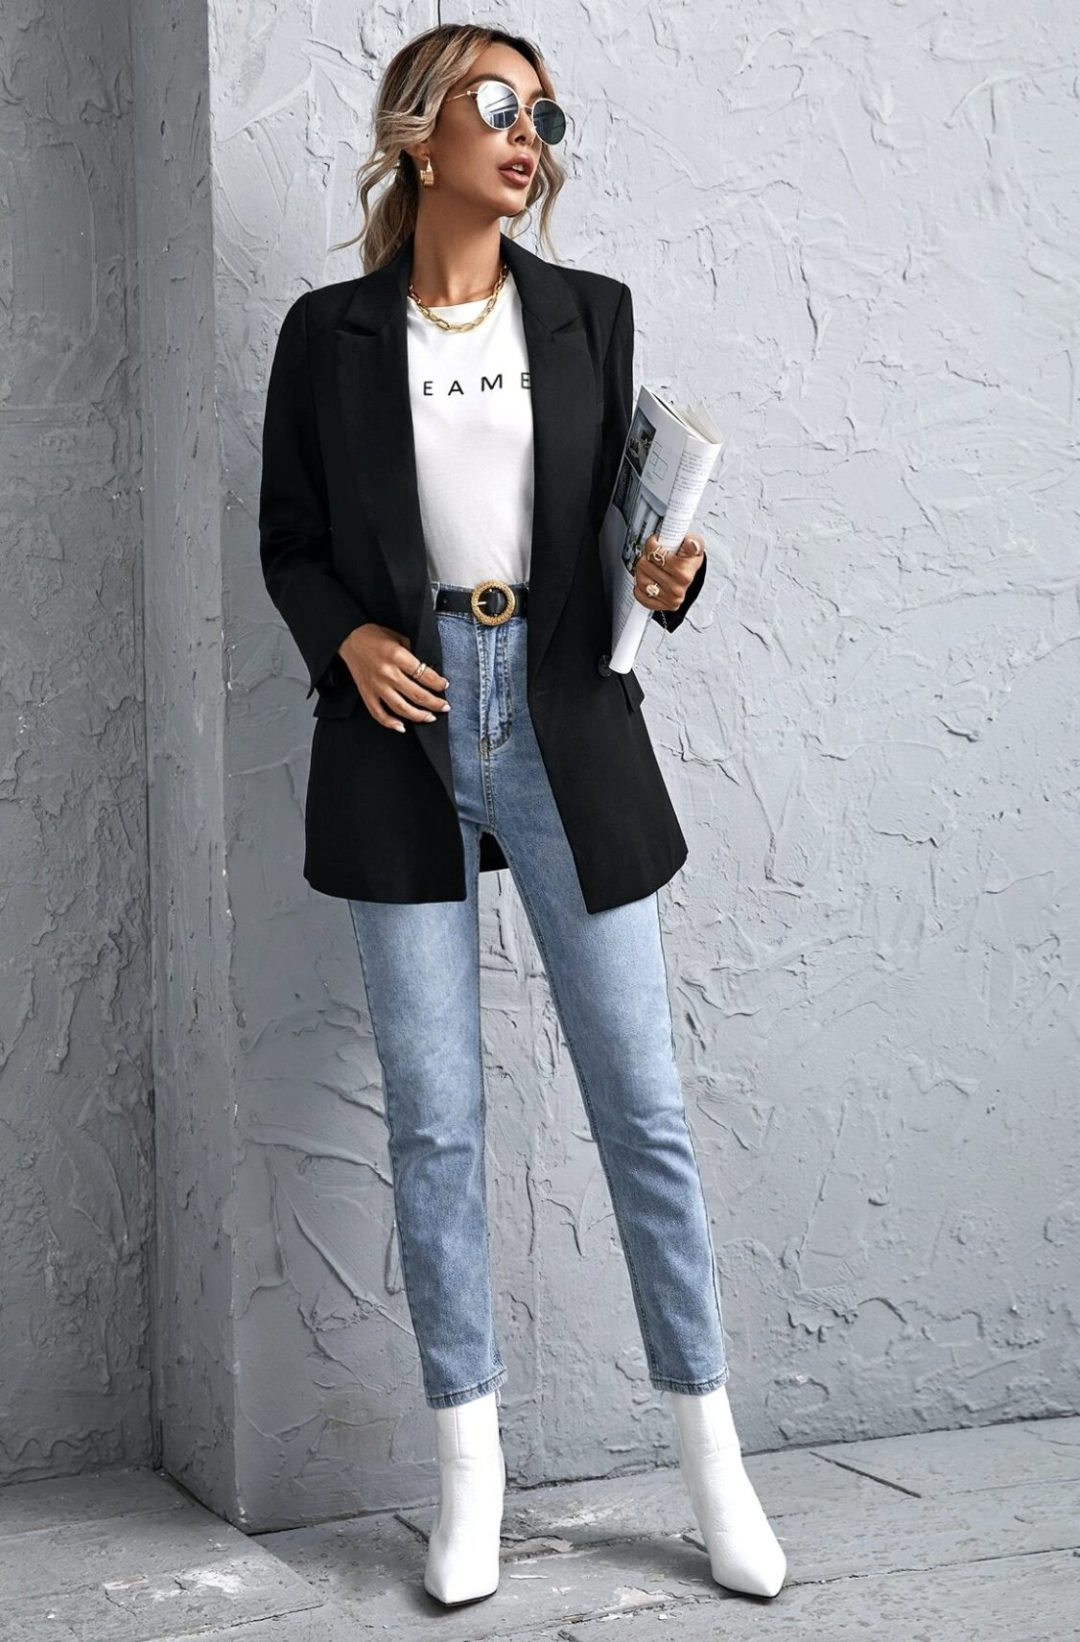 Casual black blazer outfit with jeans and T-shirt